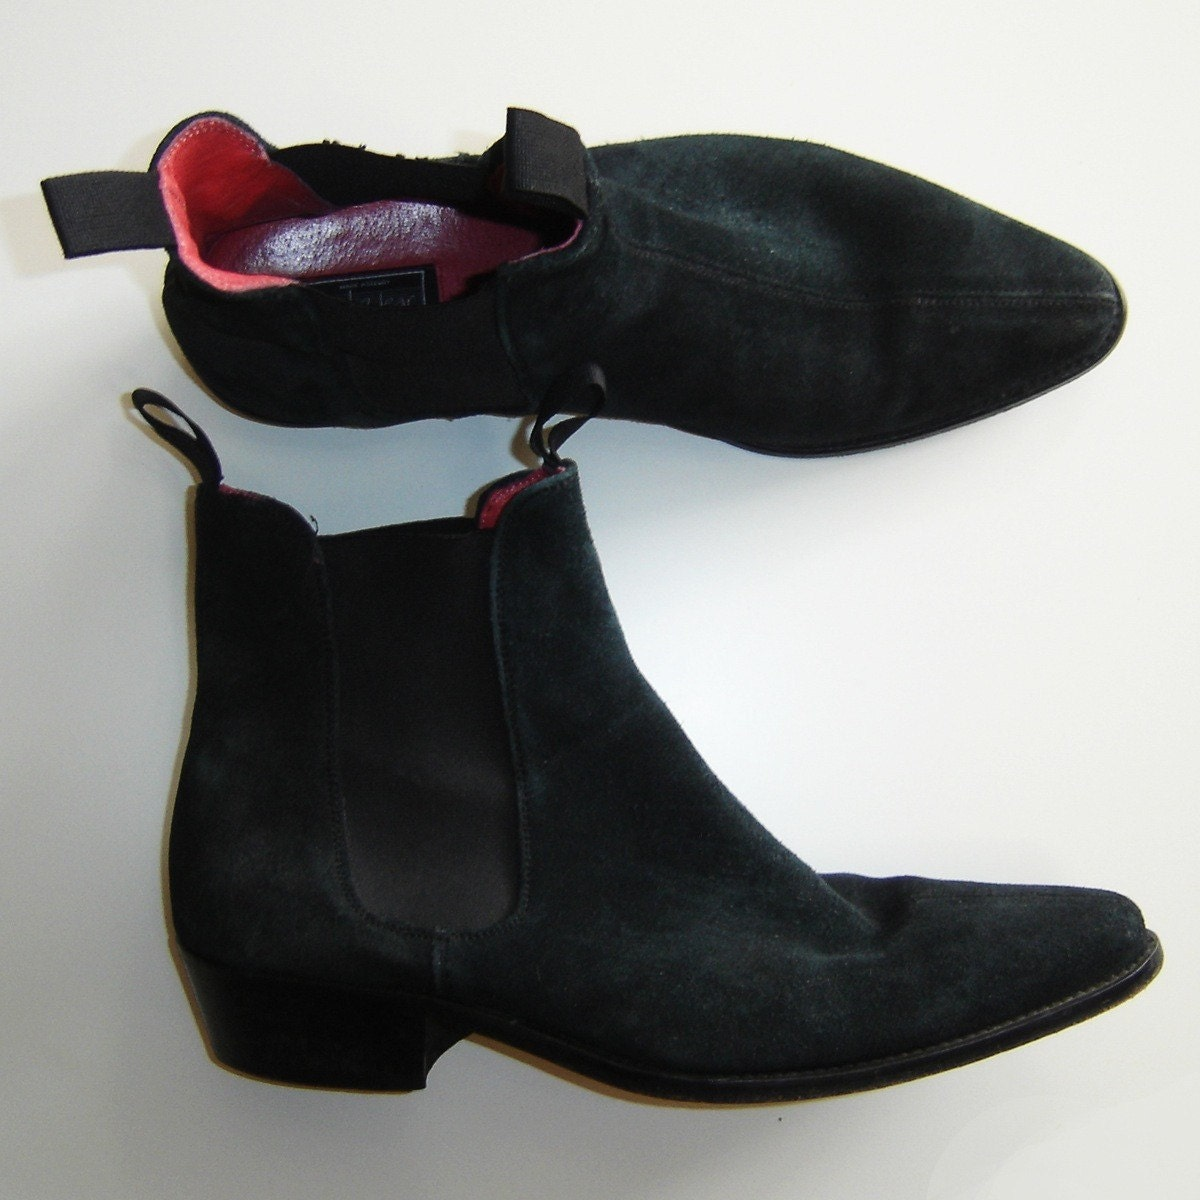 black leather suede beatle ankle boots by beatwear size